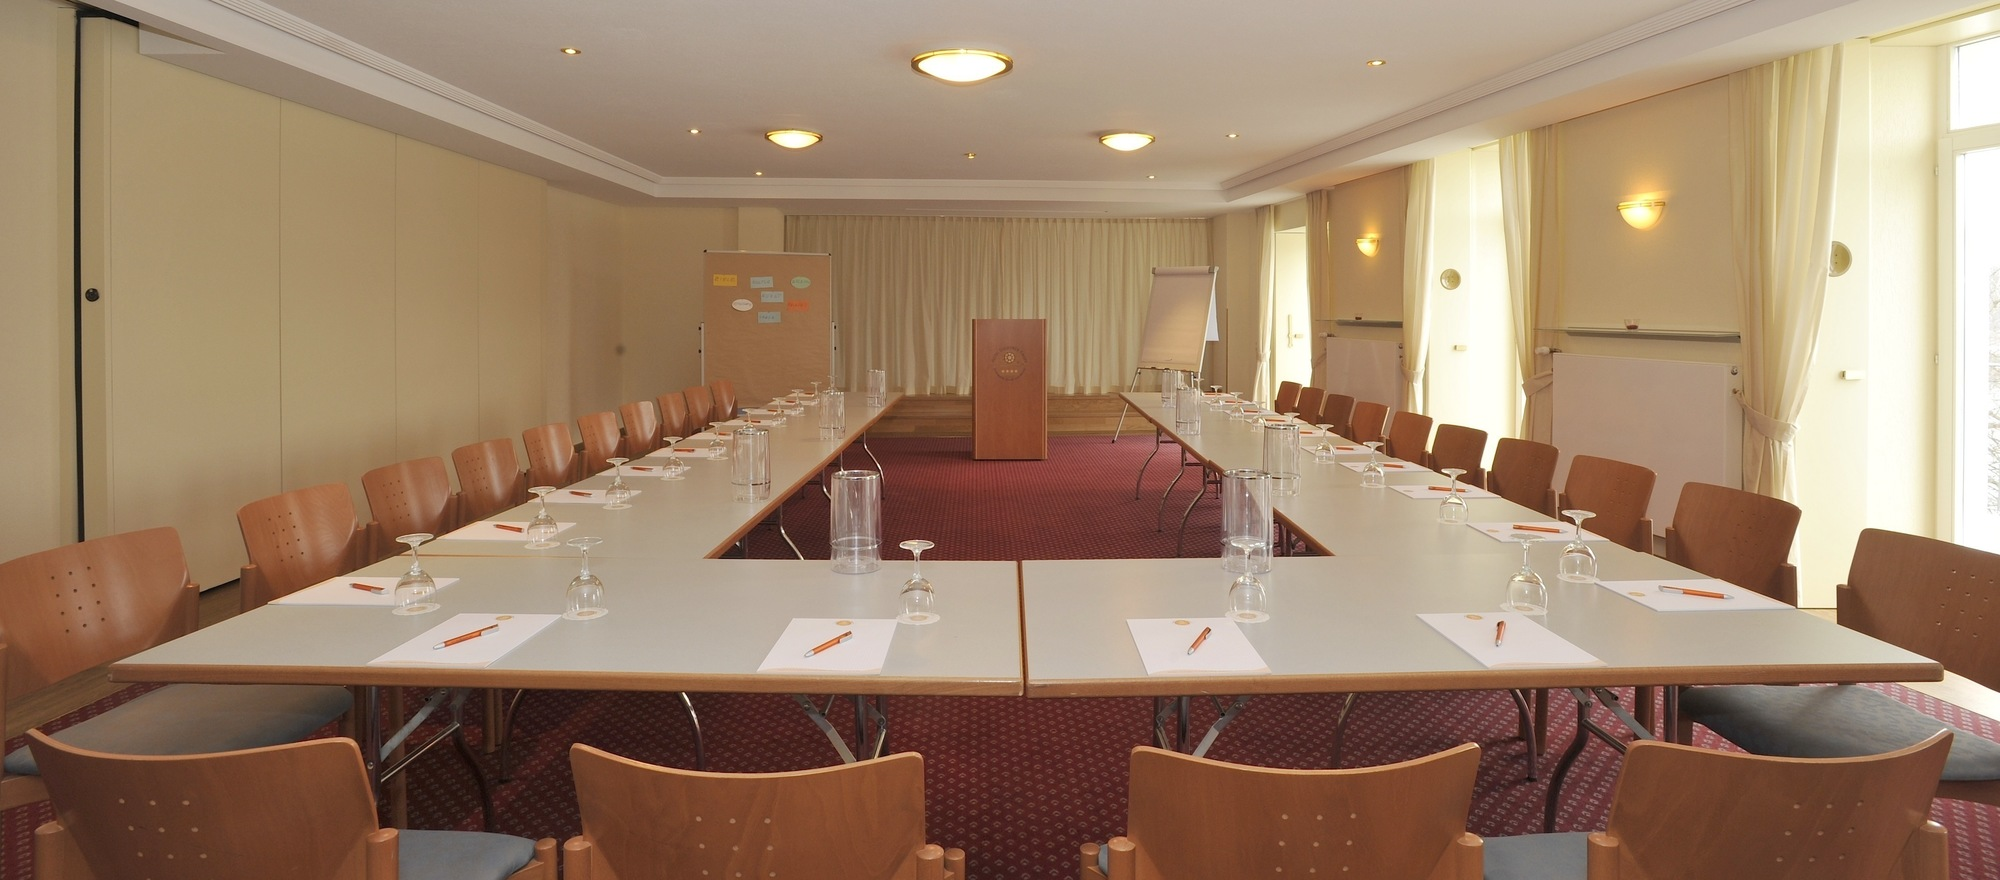 4 Event rooms in Ringhotel Goldener Knopf in Bad Saeckingen, 4 star Hotel in the Black Forest